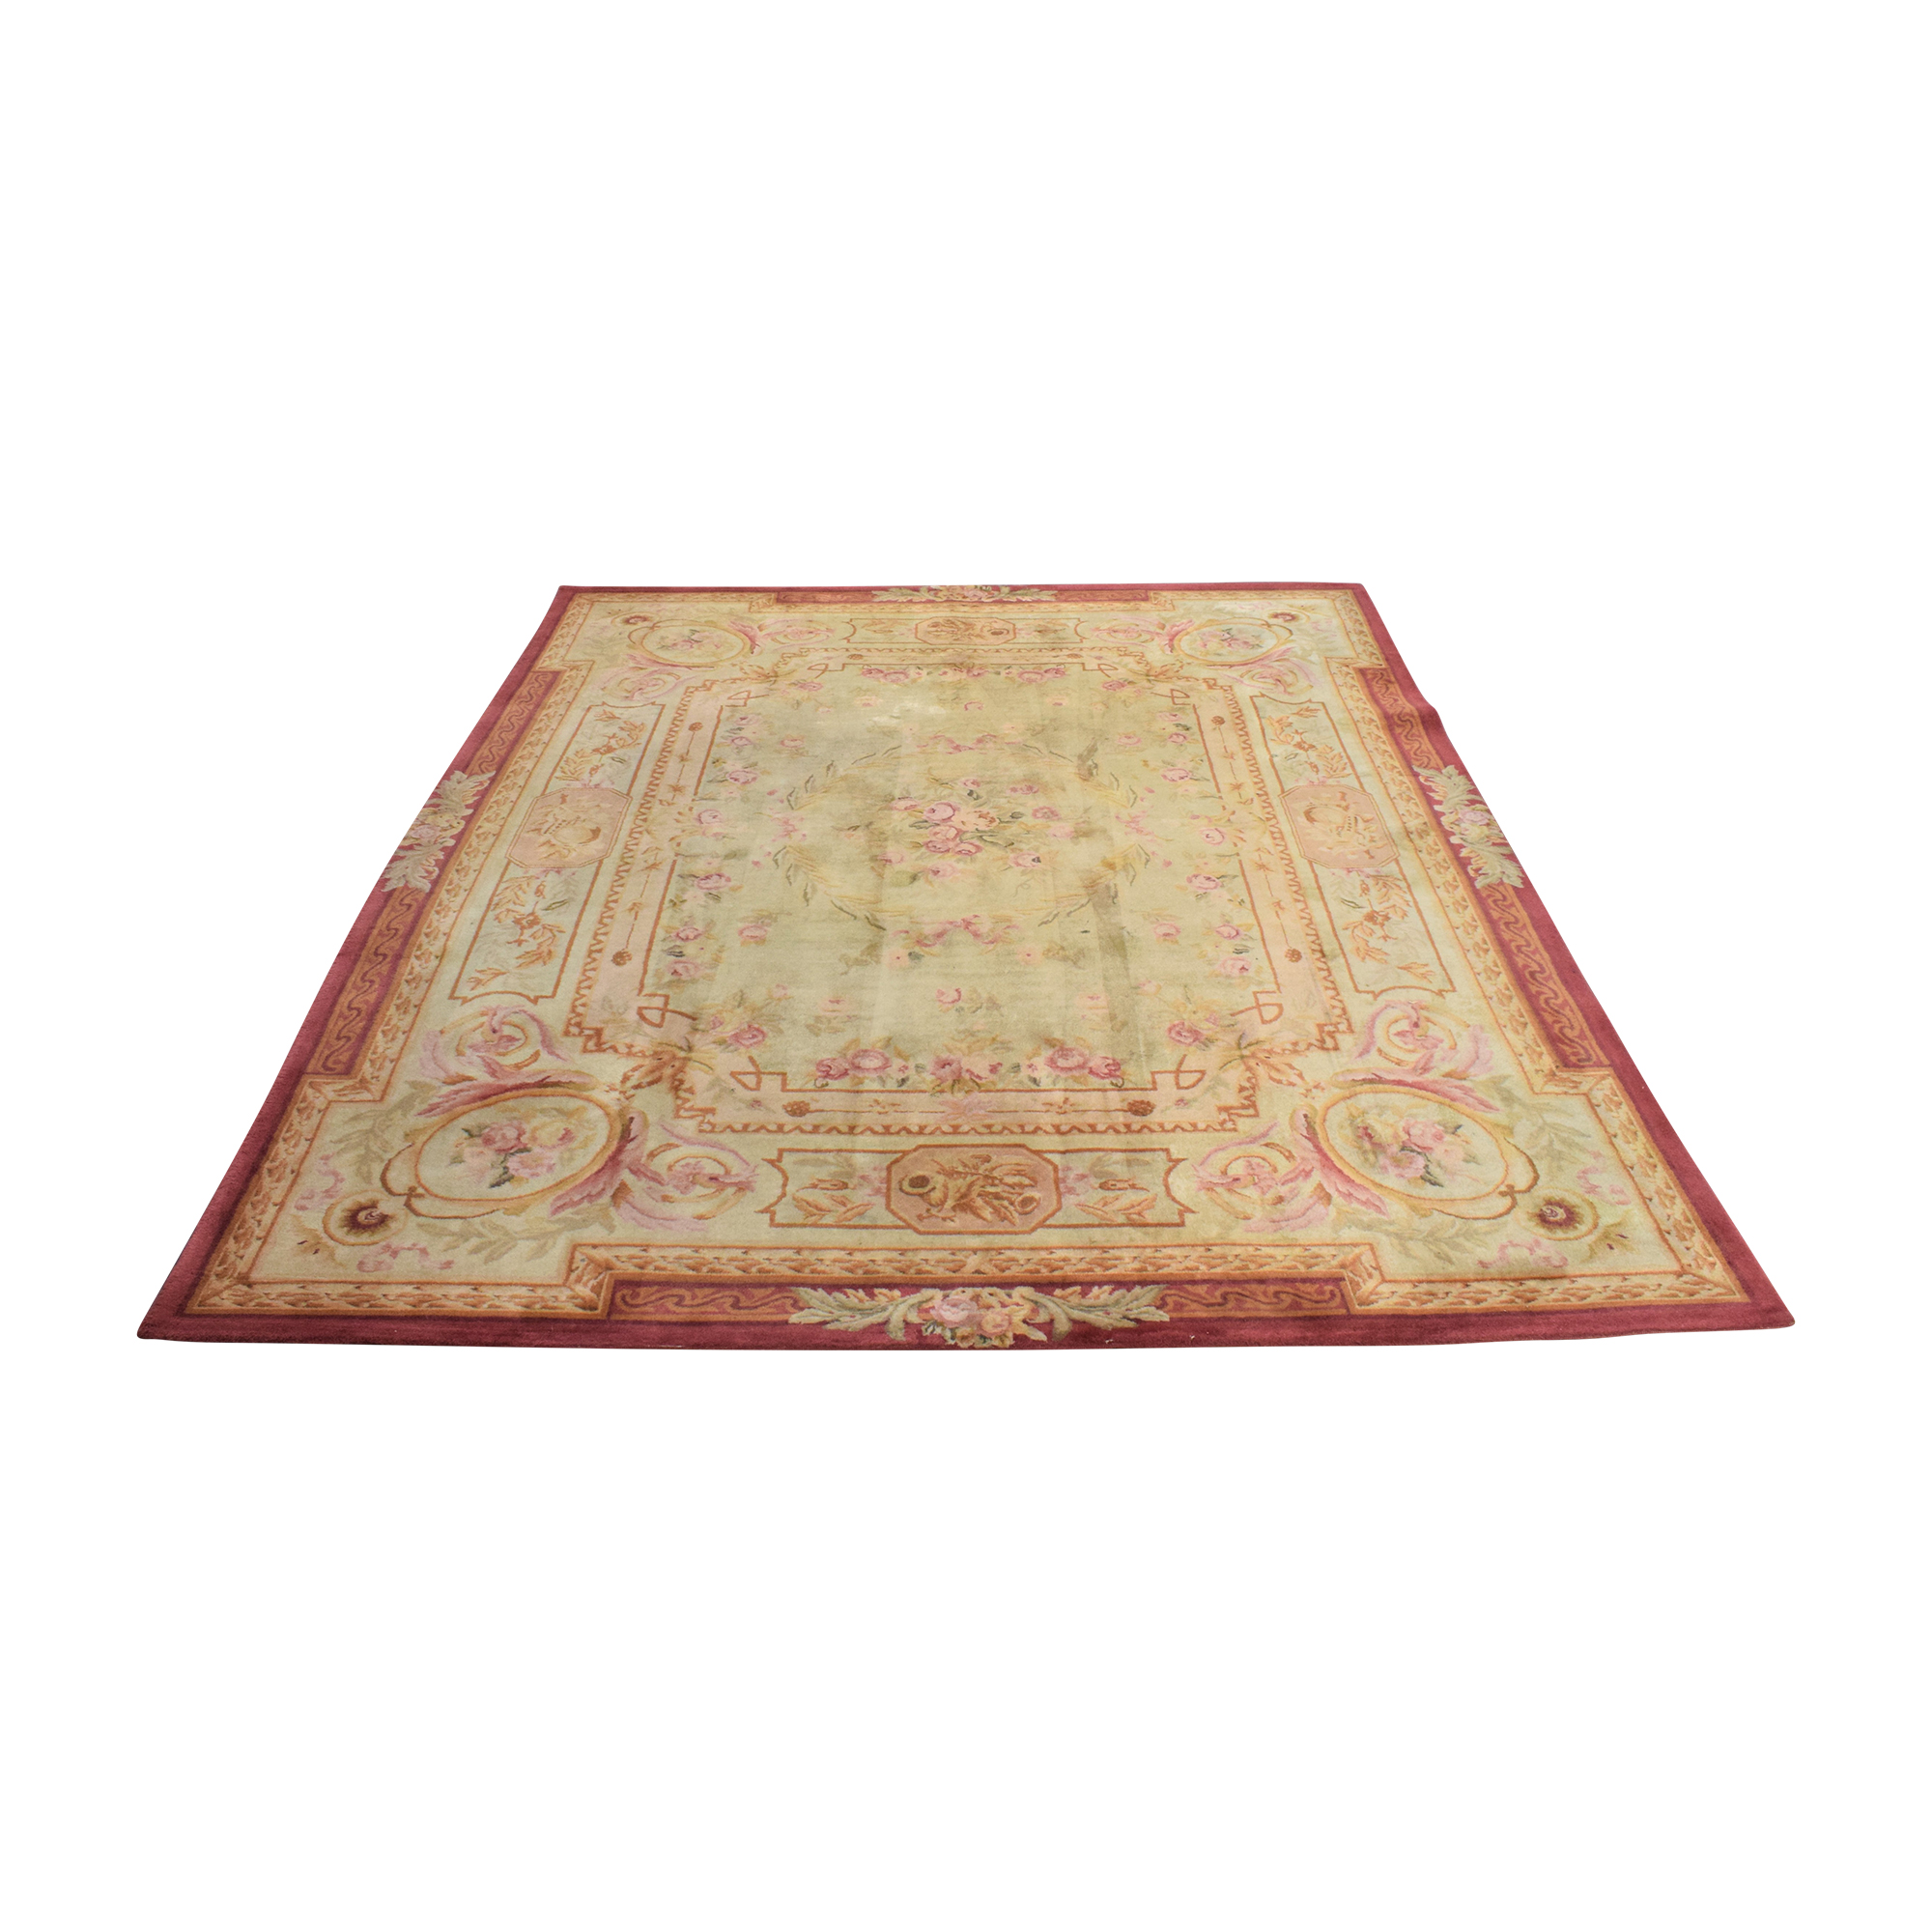 shop ABC Carpet & Home Savonery Rug ABC Carpet & Home Decor